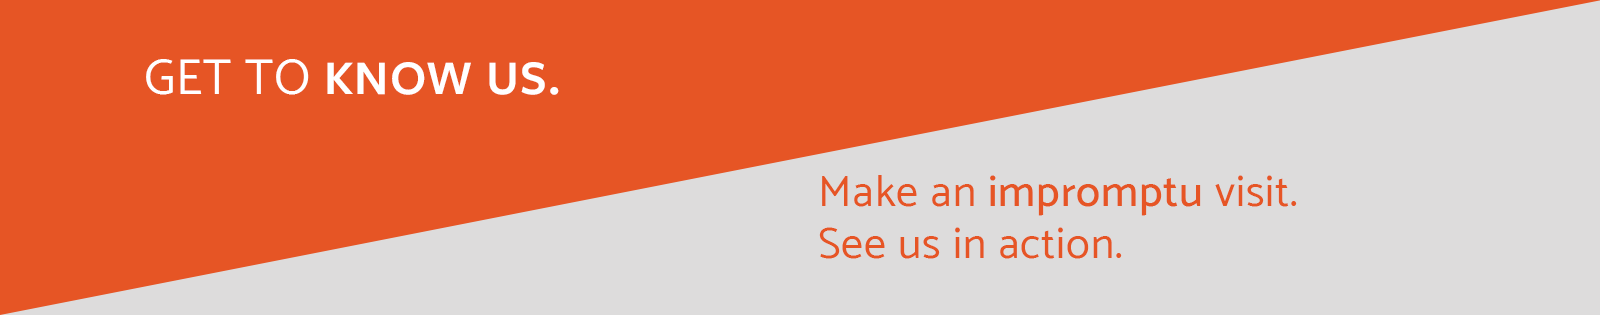 Get to know us - Make an impromptu visit. See us in action.